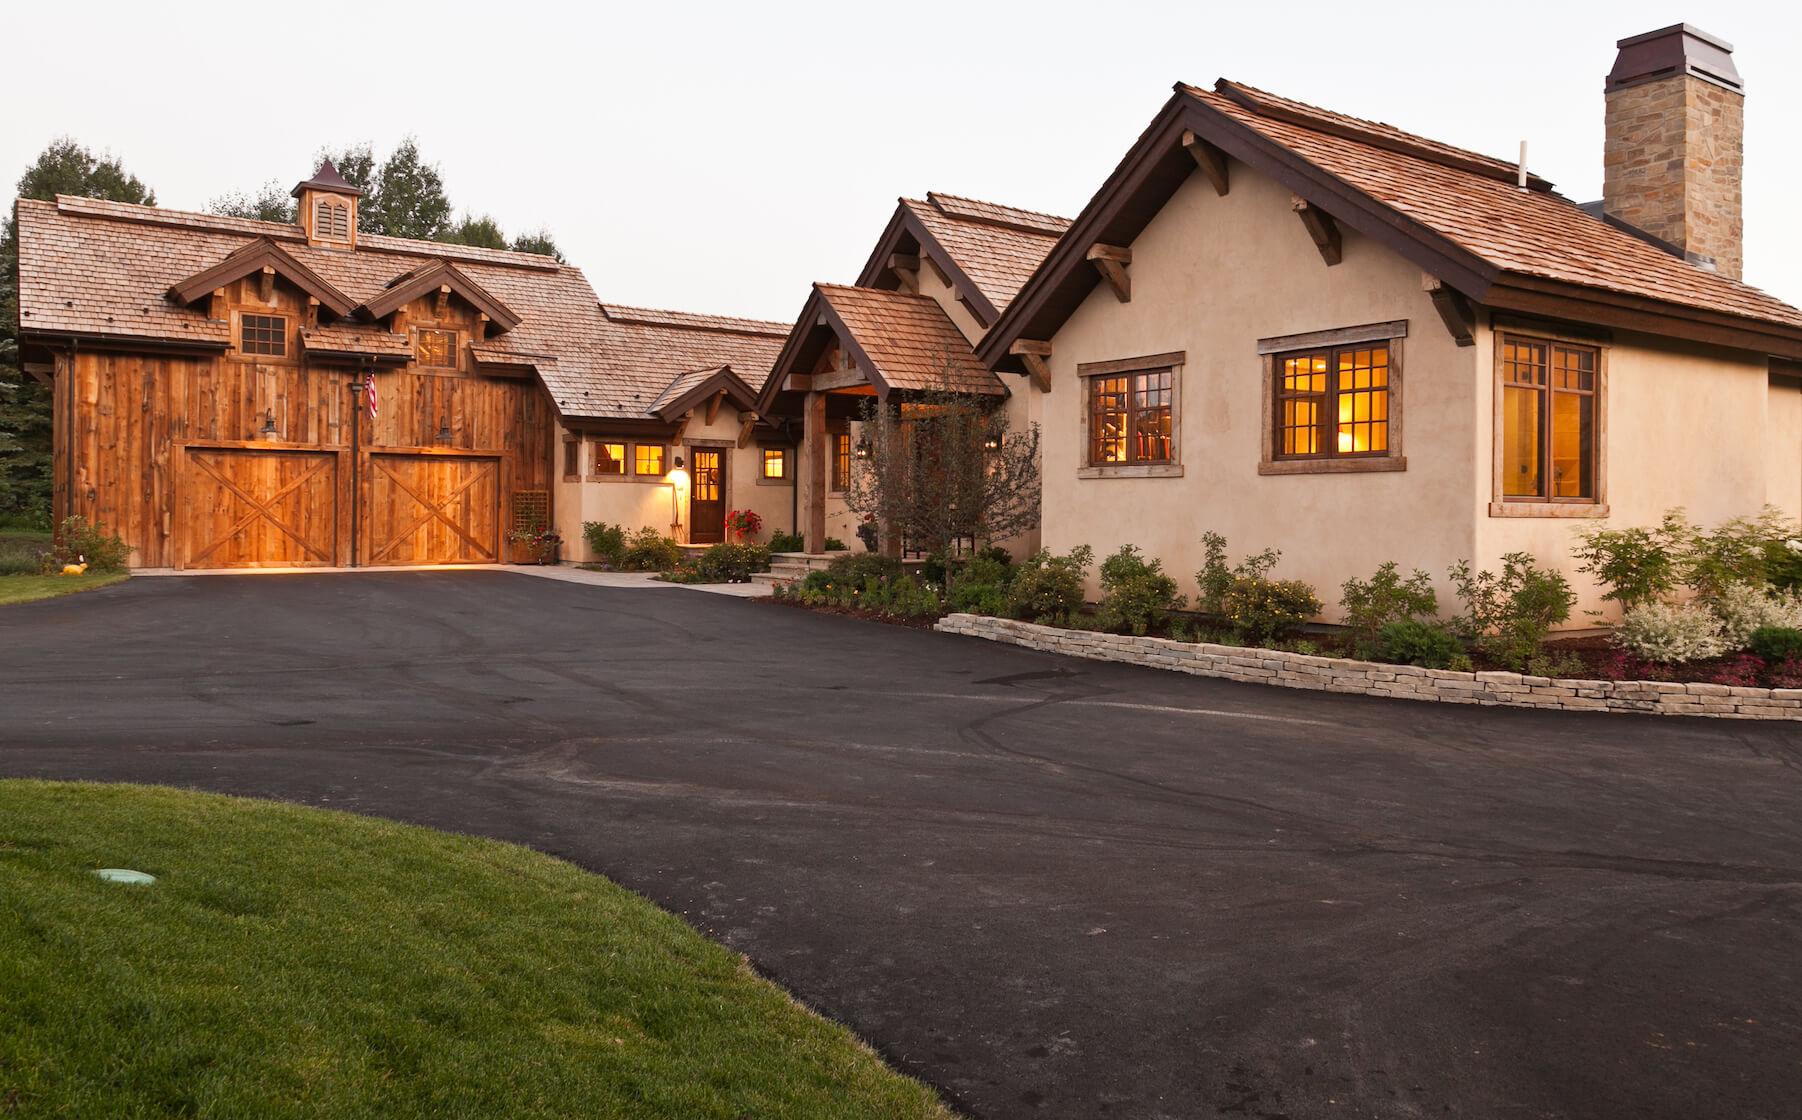 Full view from the driveway, highlighting attached garage made of reclaimed old barn wood, and beige stucco exterior with exposed beams under roof.